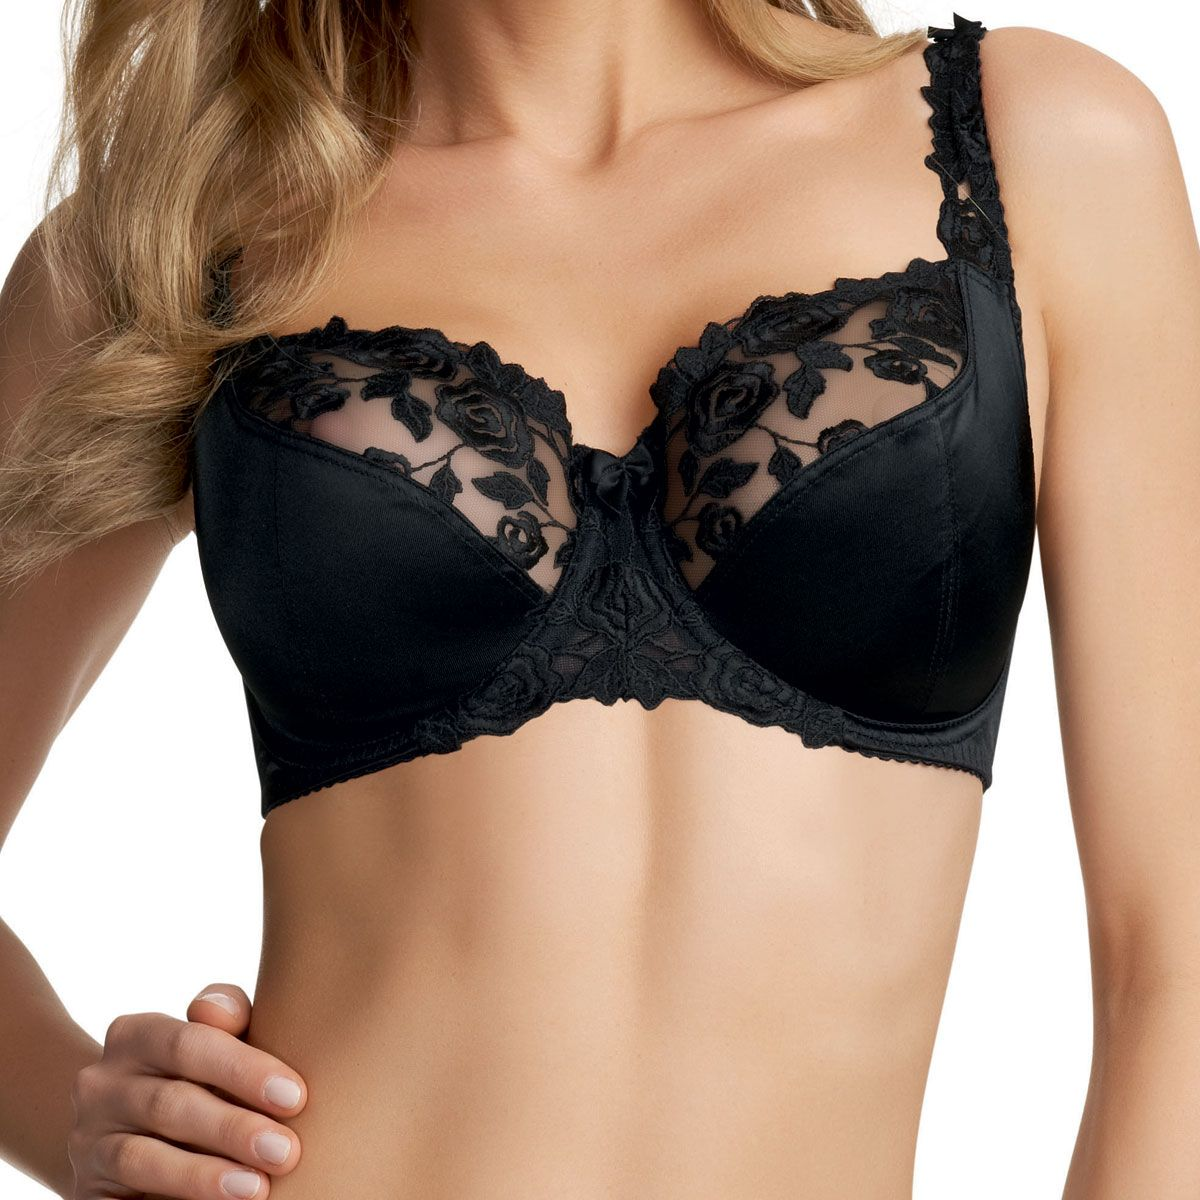 New Fantasie Lingerie Belle Underwire Balcony Bra 6010 Black 30C